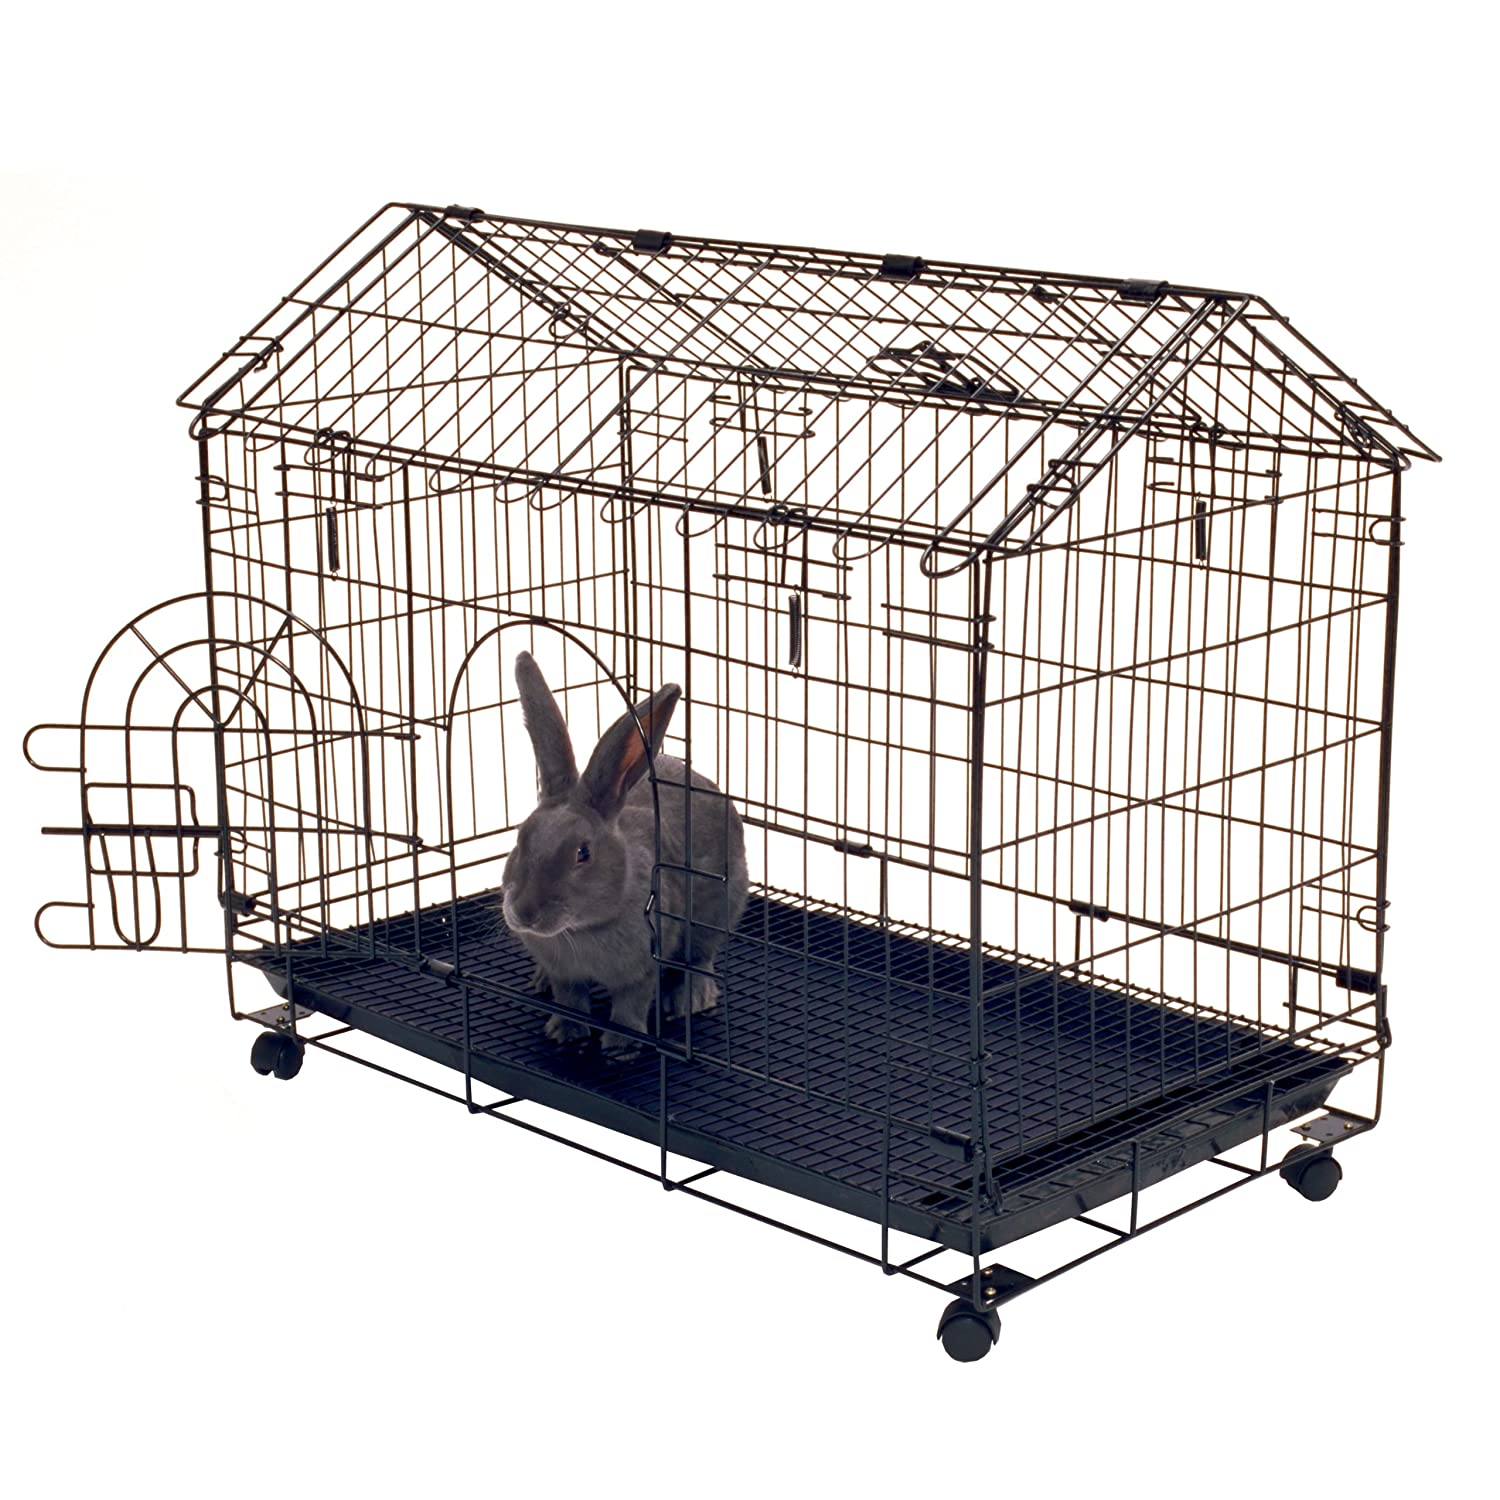 Rabbit House Cage Indoor Outdoor Bunny Crate Small Pet ...